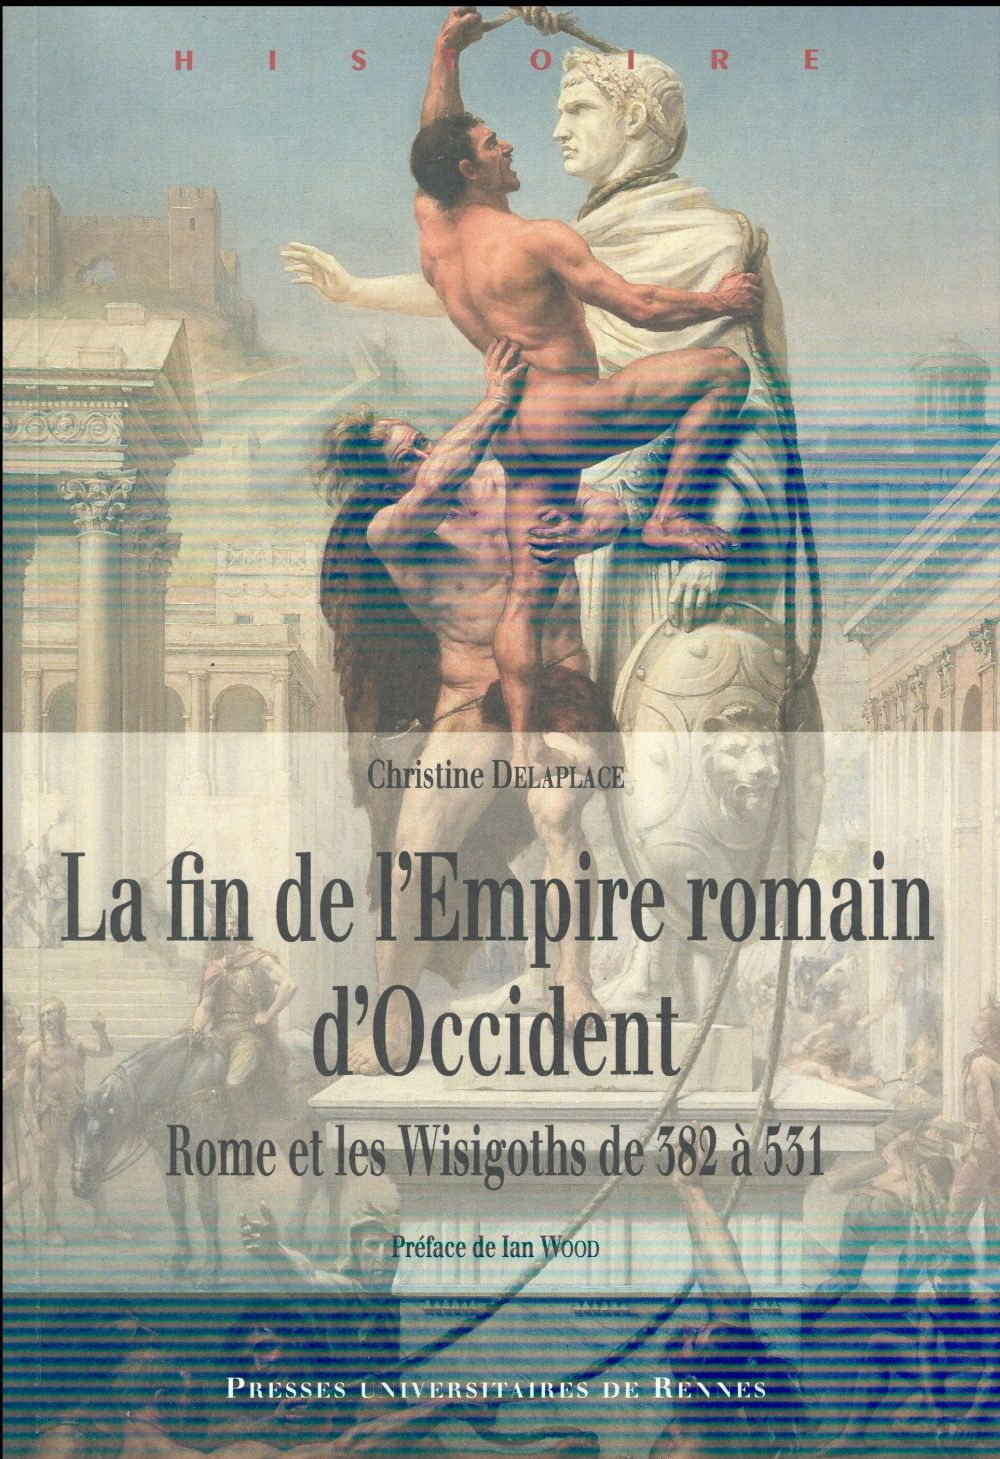 LA FIN DE L'EMPIRE ROMAIN D'OCCIDENT : ROME ET LES WISIGOTHS DE 382 A 534